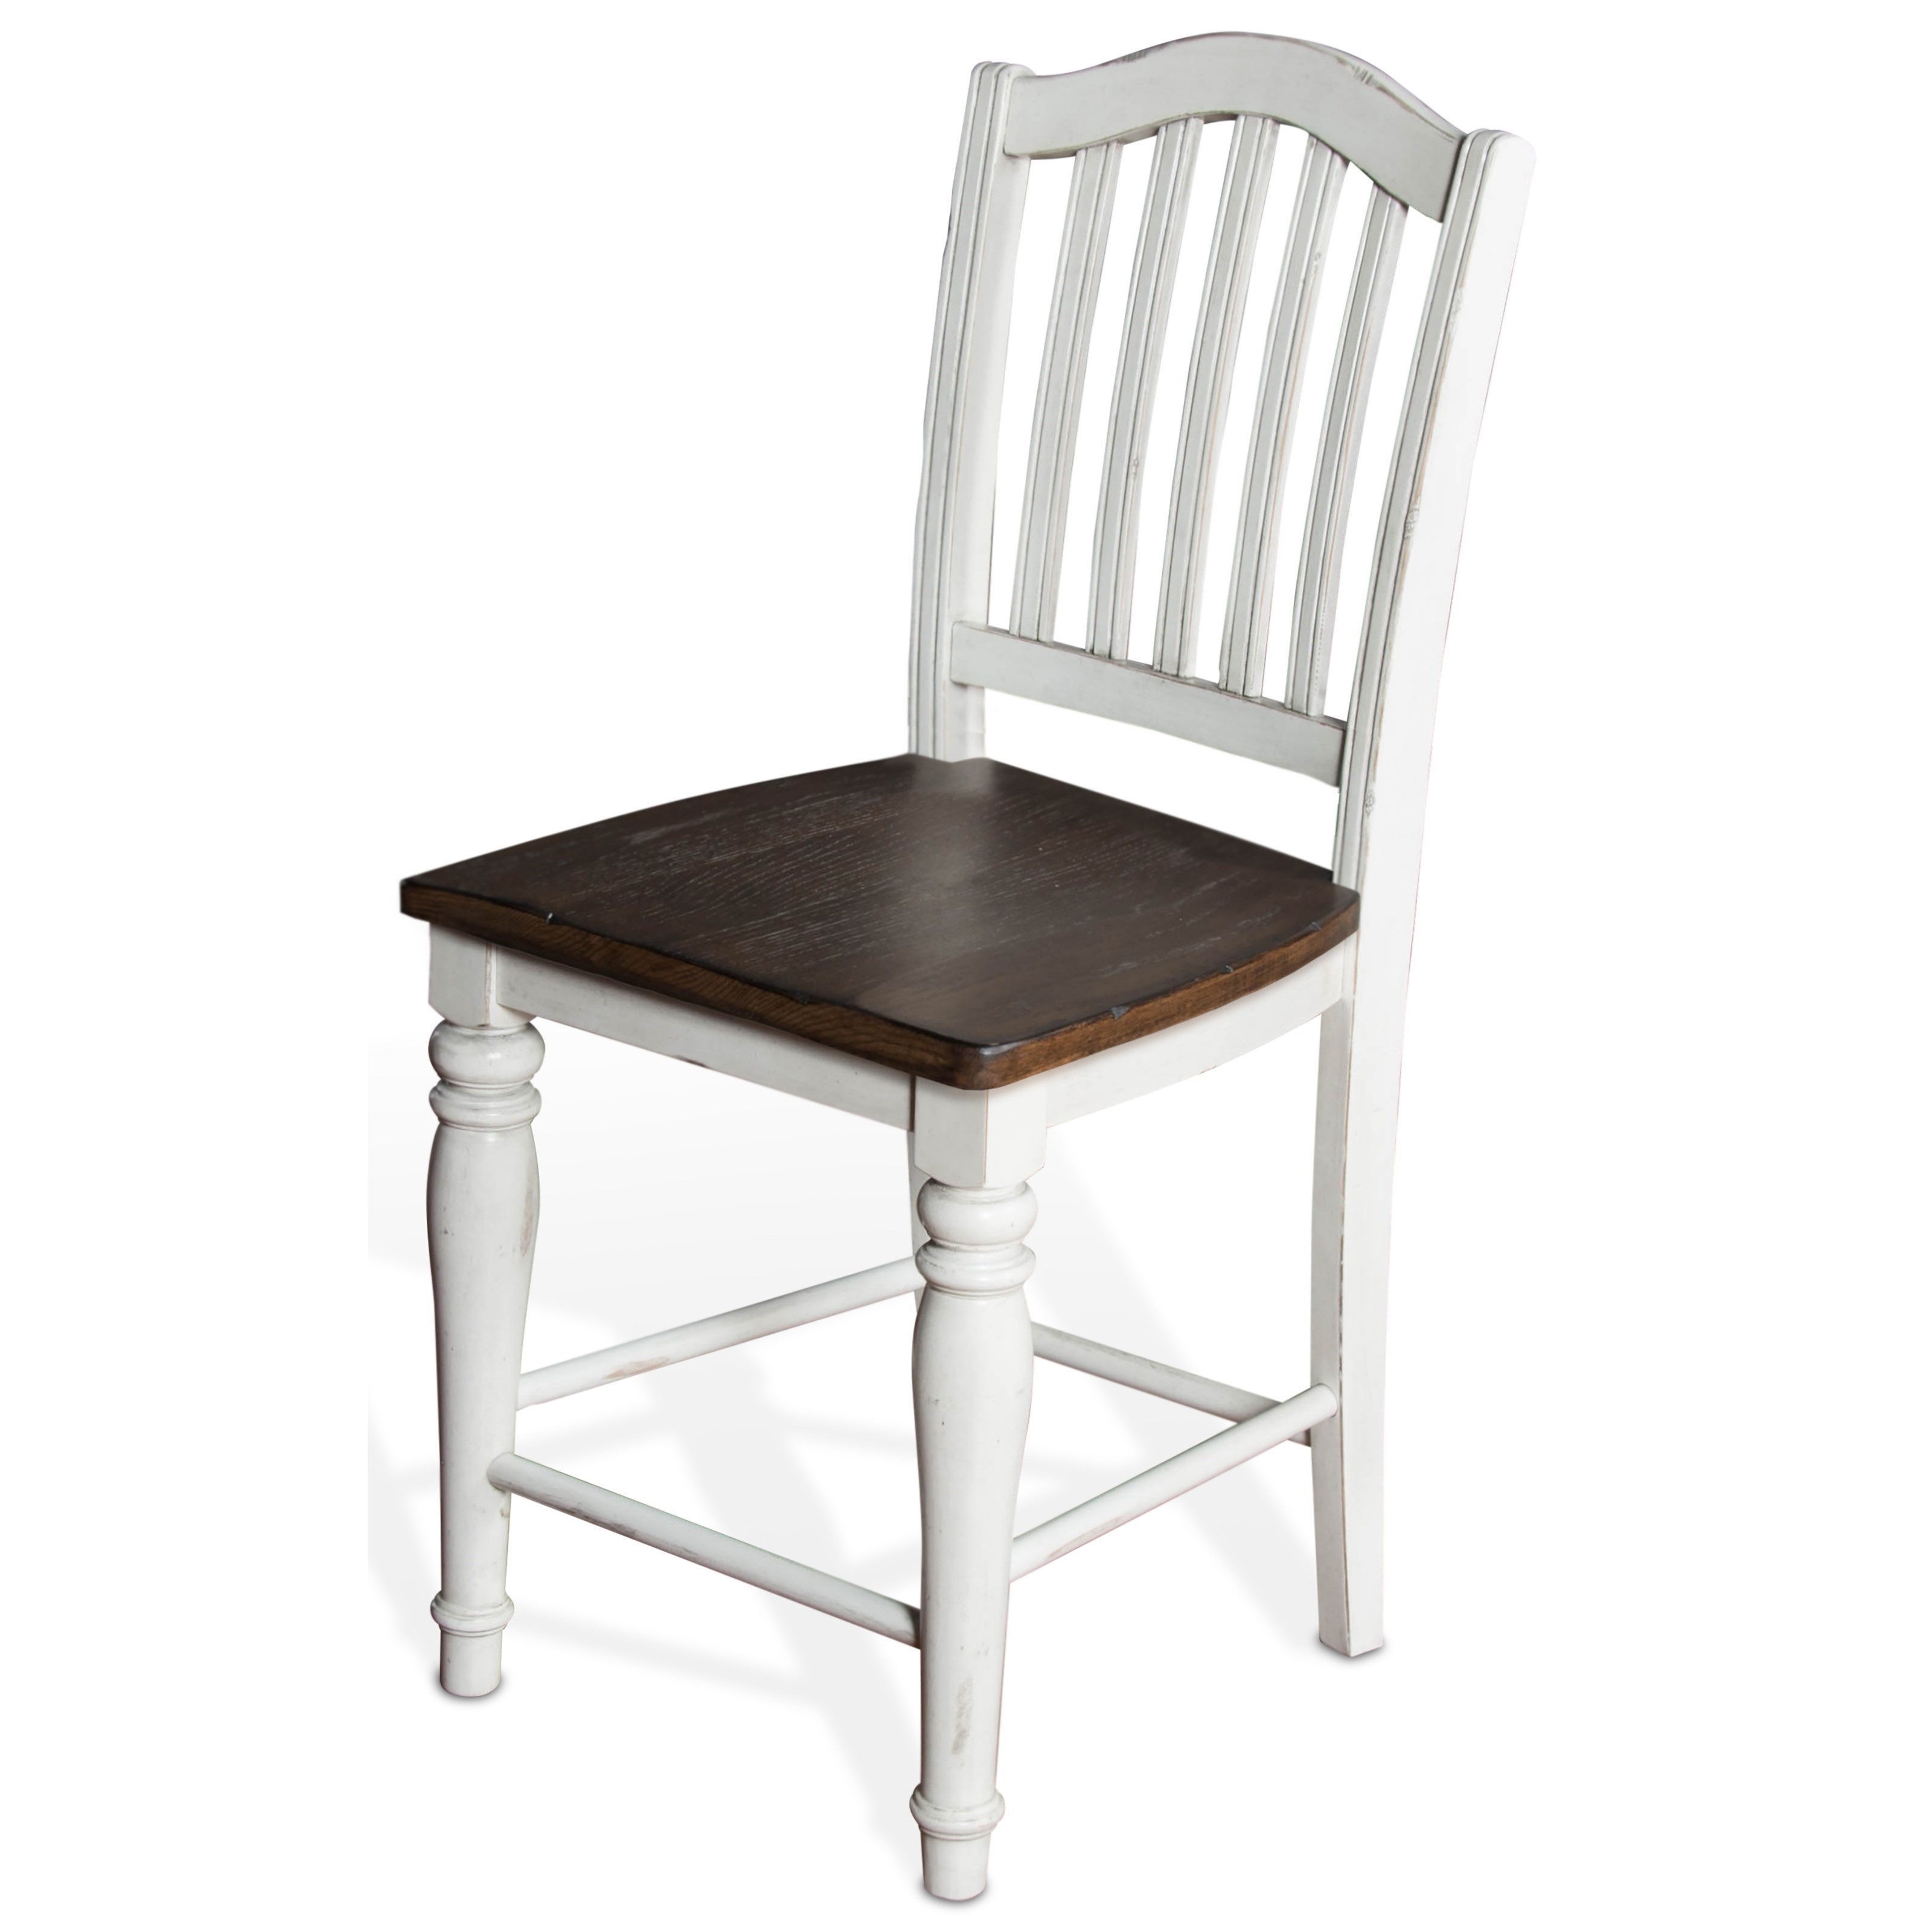 "Bourbon County 24""H Slatback Stool w/ Wood Seat by Sunny Designs at Sparks HomeStore"